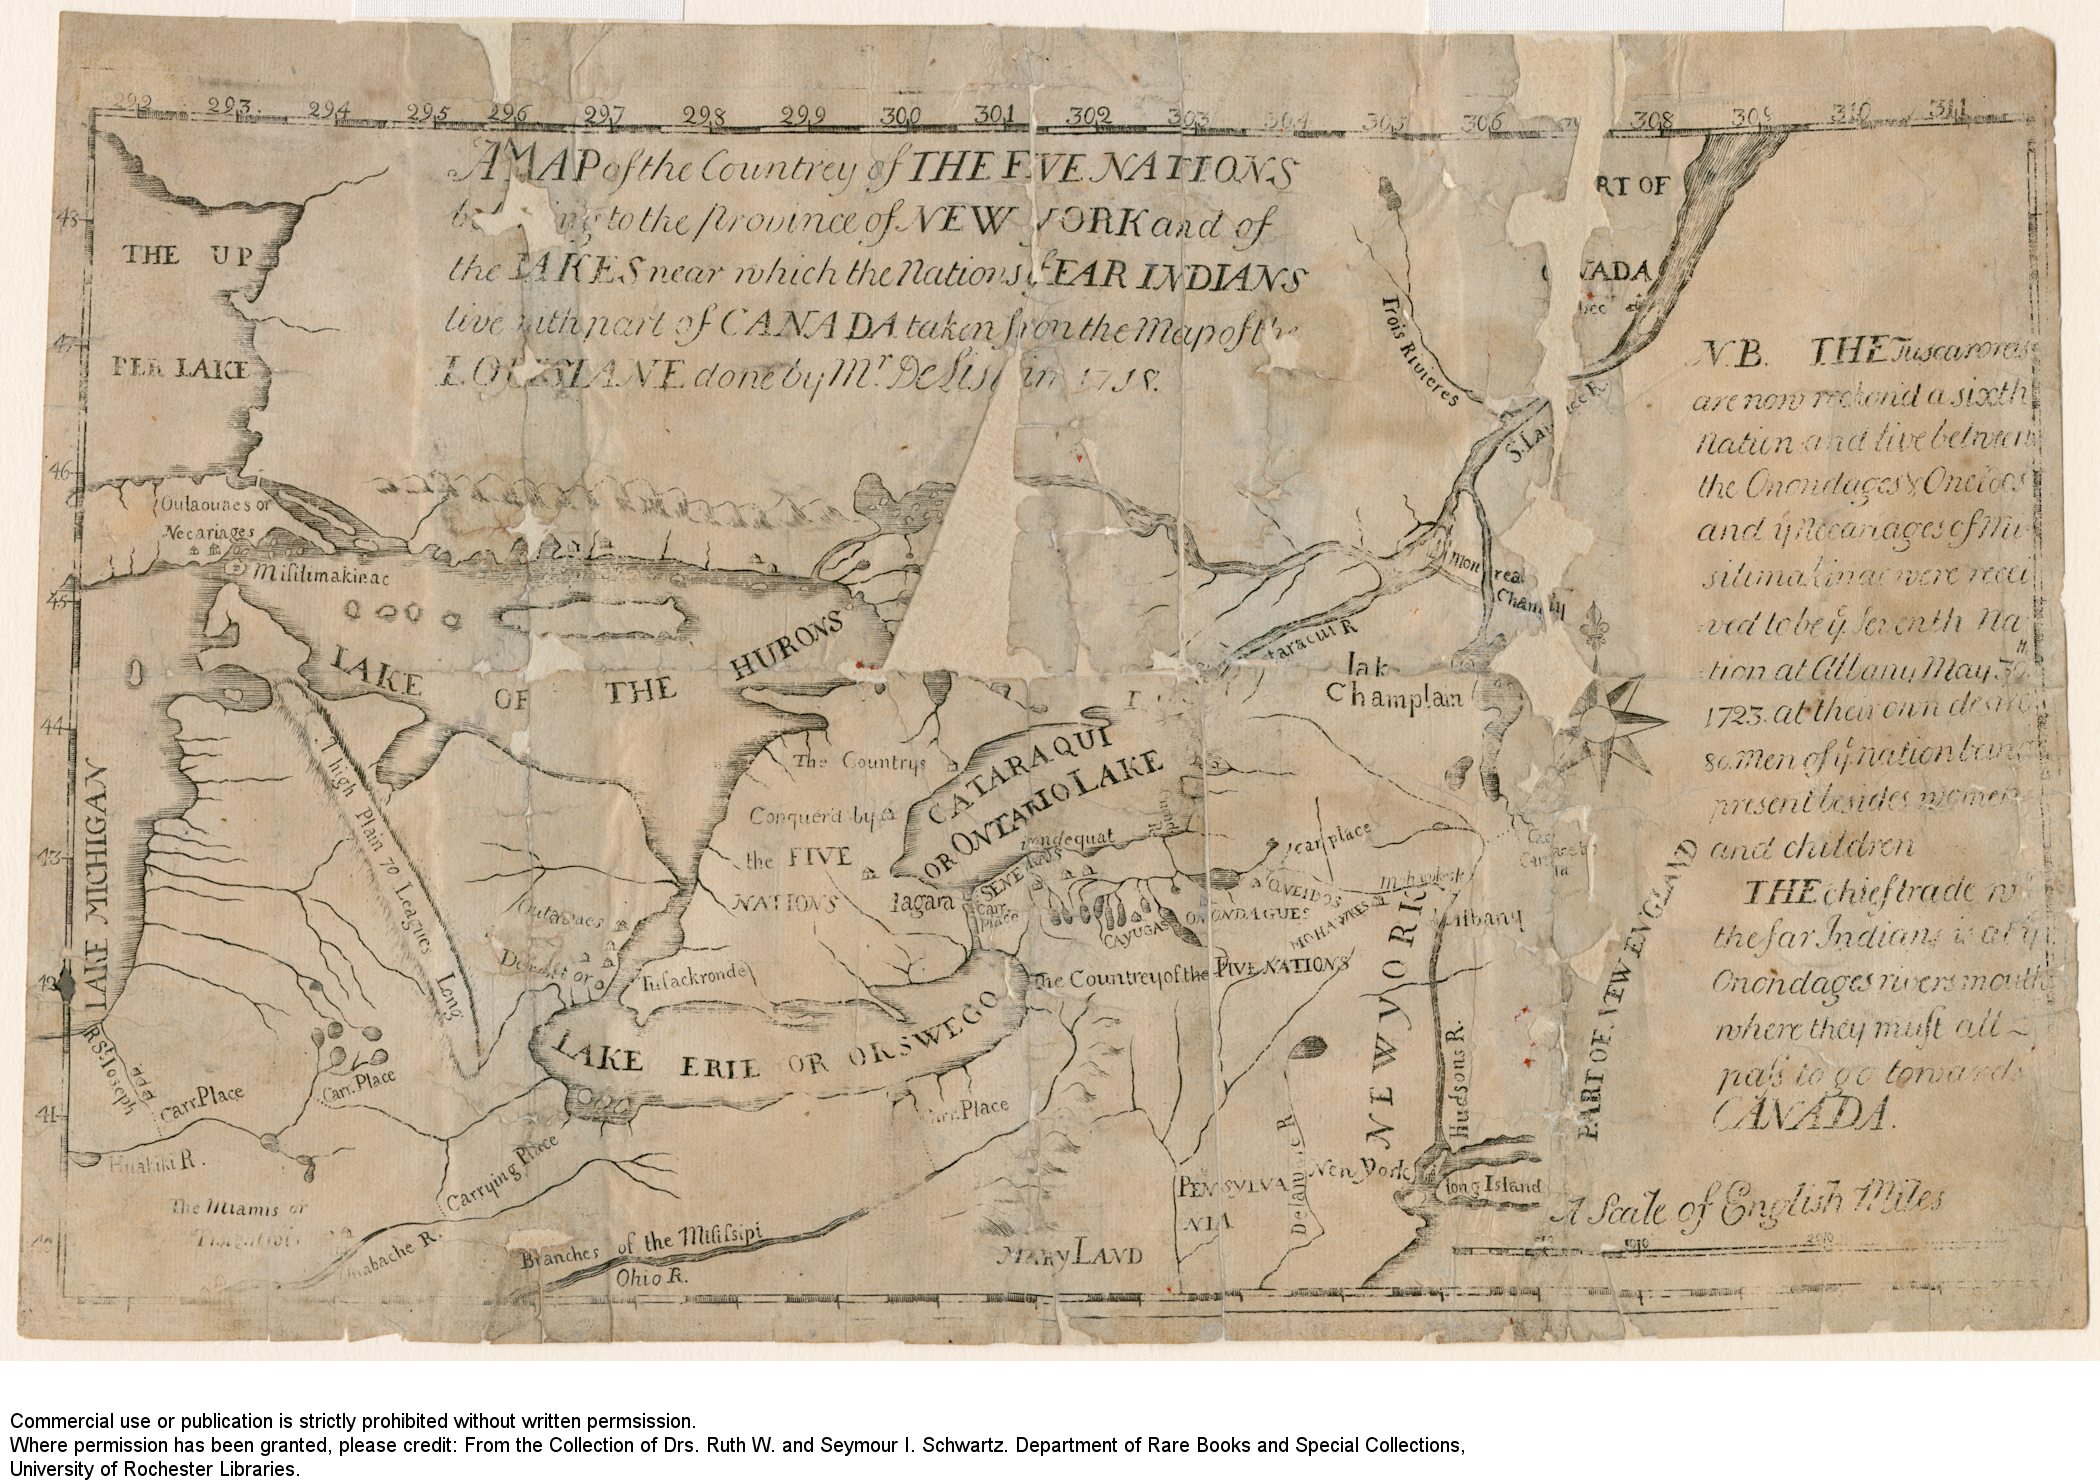 Rare Map And Print Collection Of Western New York Donated To The - New york map rochester